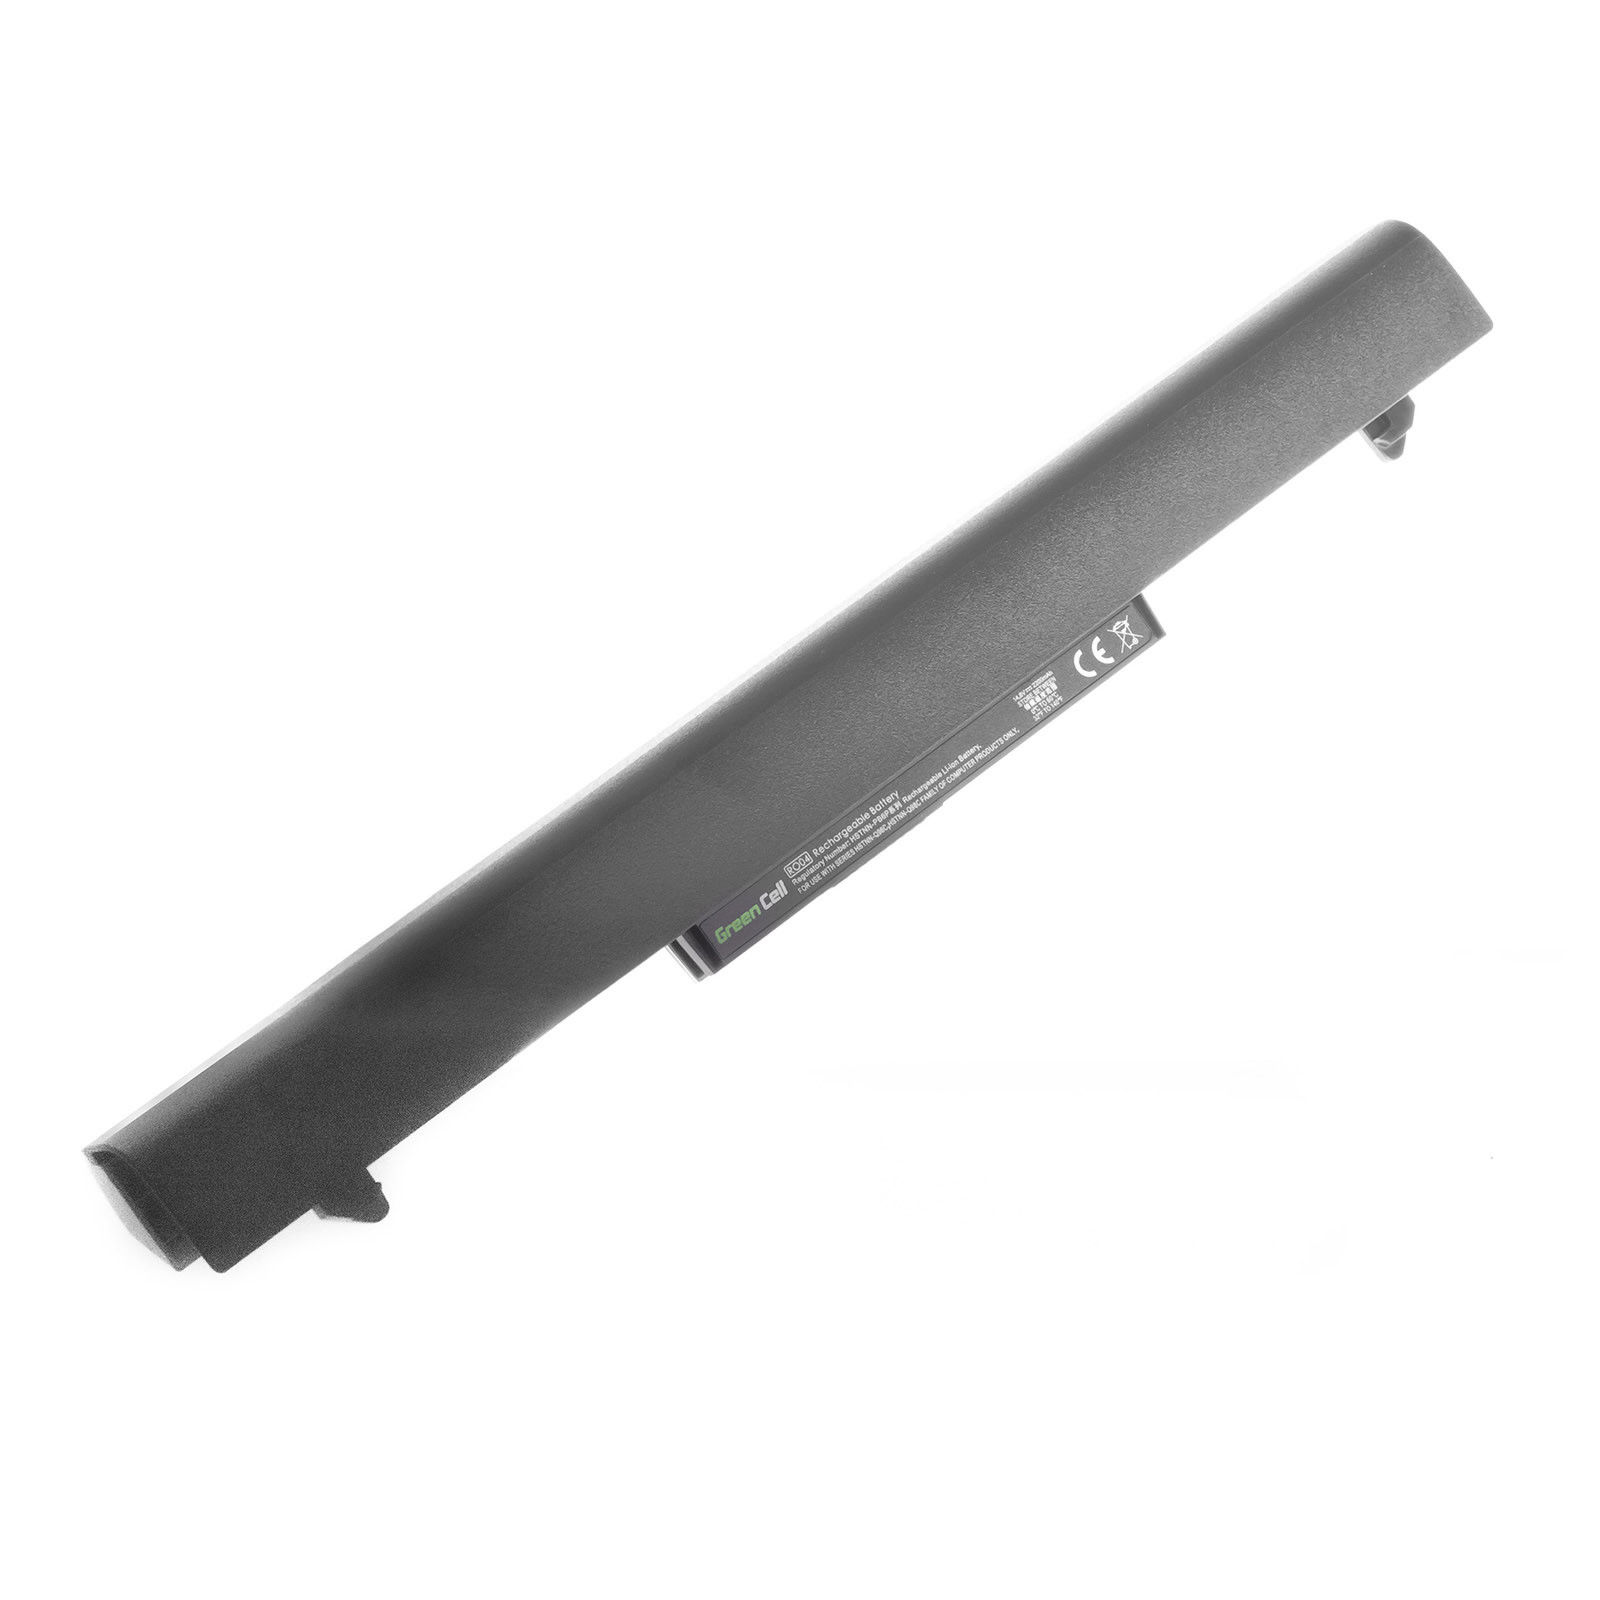 HP HSTNN-LB7A R006 RO06 811347-001 HSTNN-PB6P RO04 compatible battery